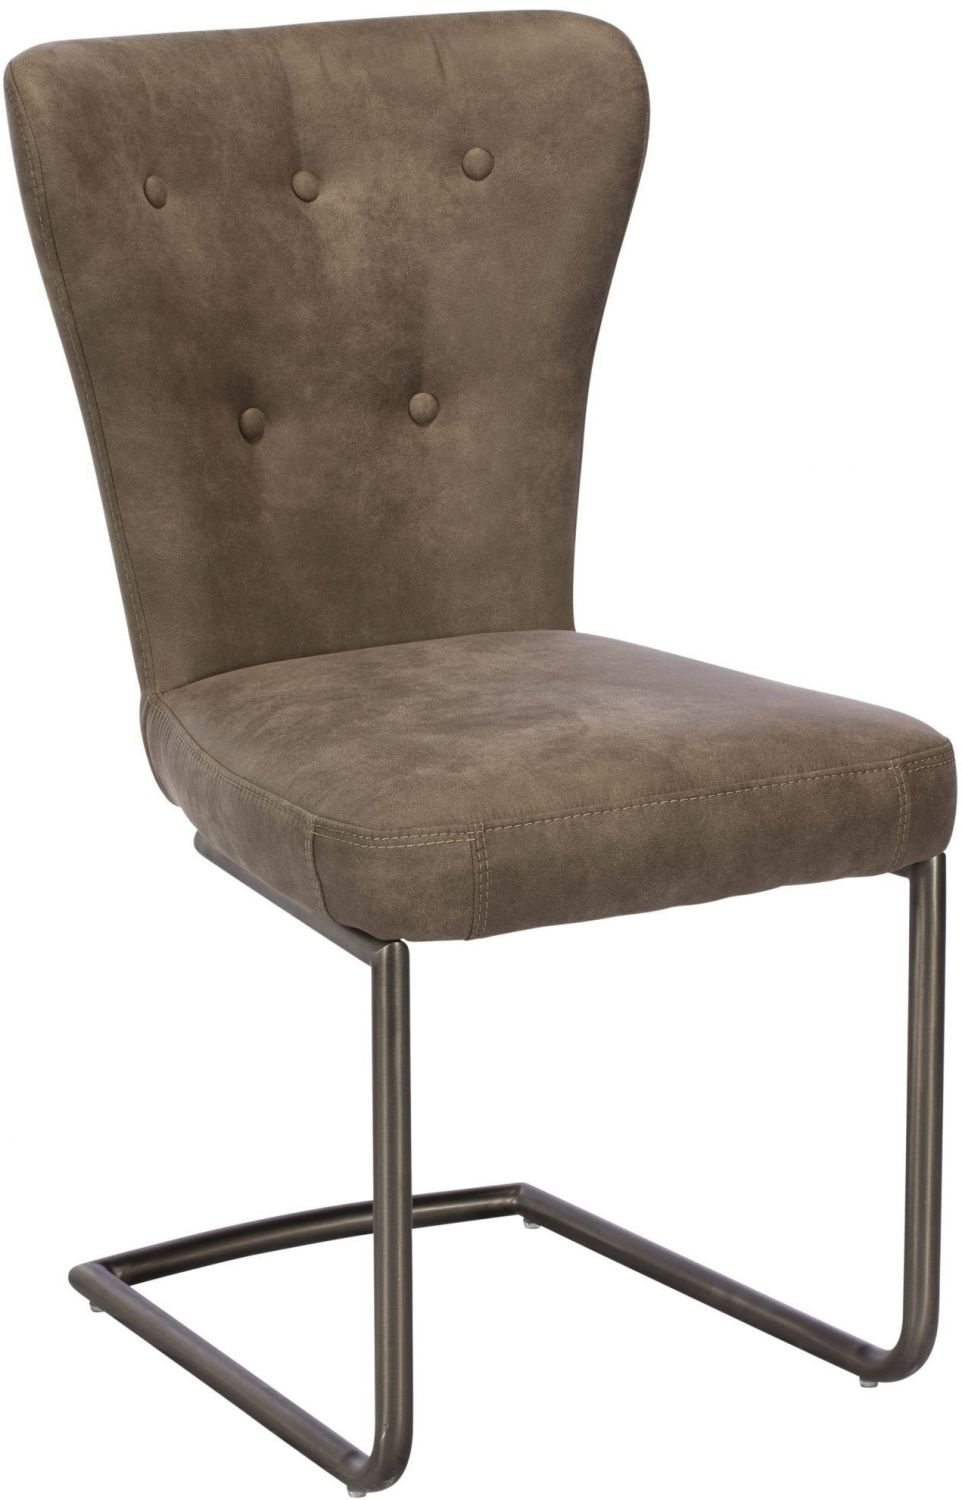 Oscar Dining Chair Grey & Red Brown